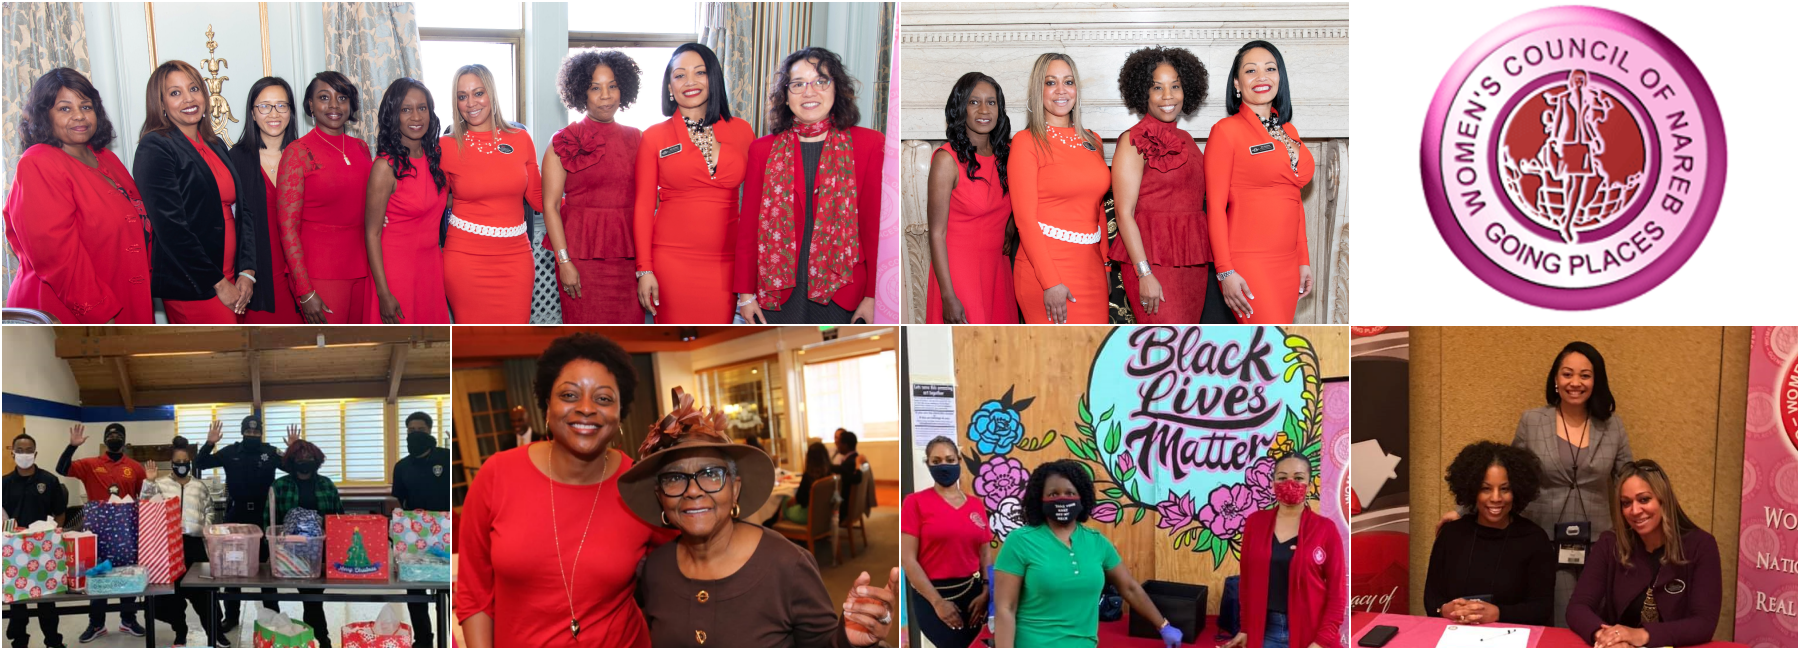 women's-council-of-associated-real-property-brokers-arpb-careb-nareb-oakland-california